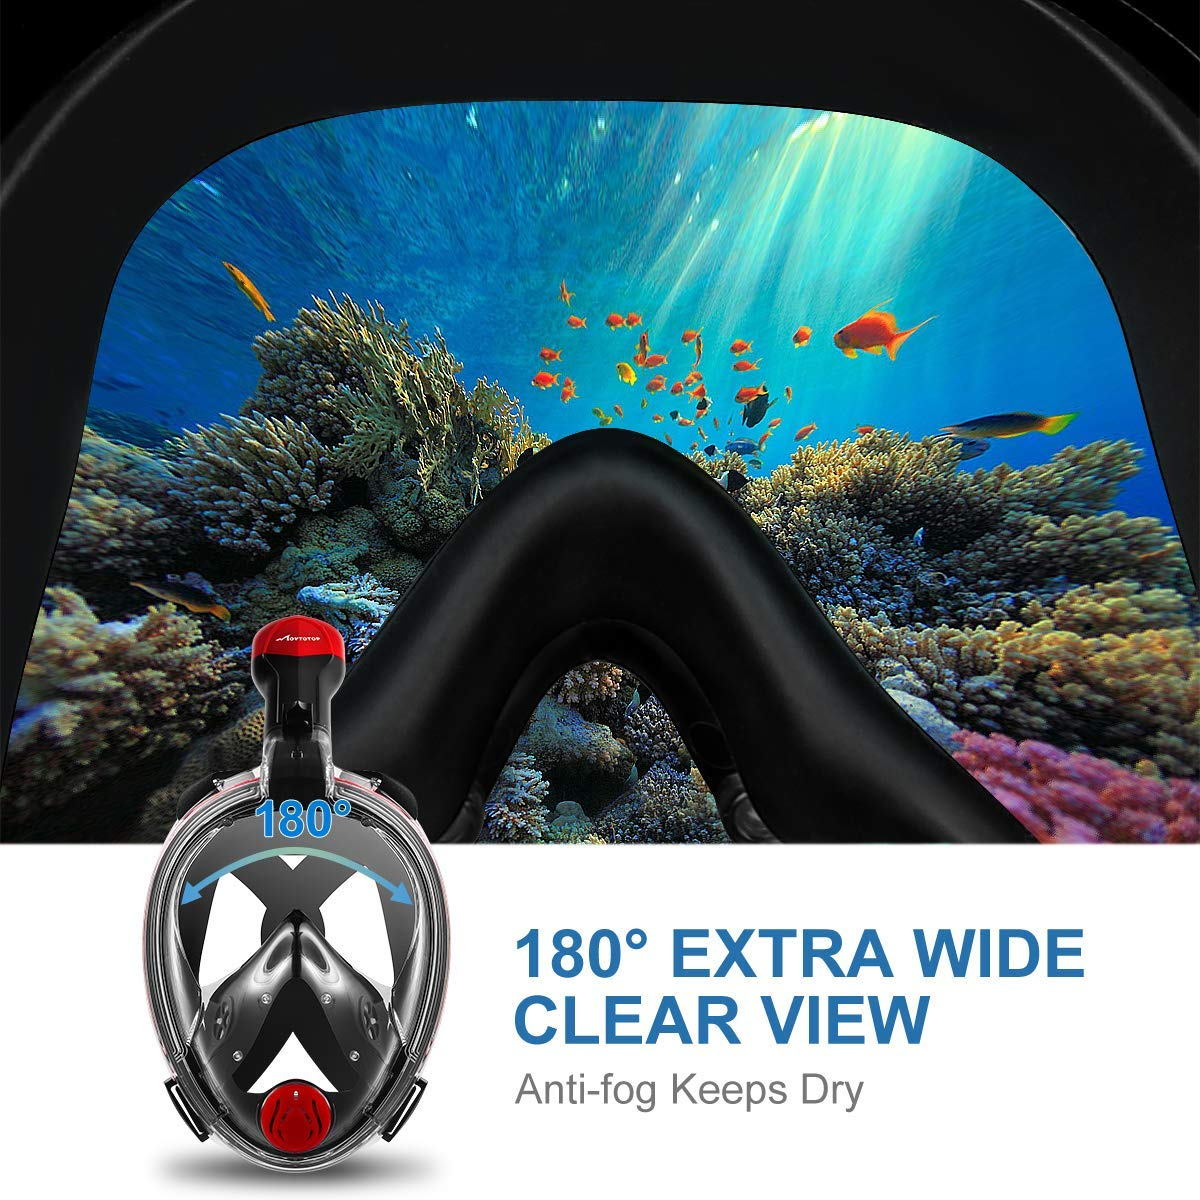 Foldable Snorkeling Mask with Detachable Camera Mount 180/° Panoramic View Diving Mask Dry Top Set Anti-Fog Anti-Leak for Adults and Kids MOVTOTOP Full Face Snorkel Mask